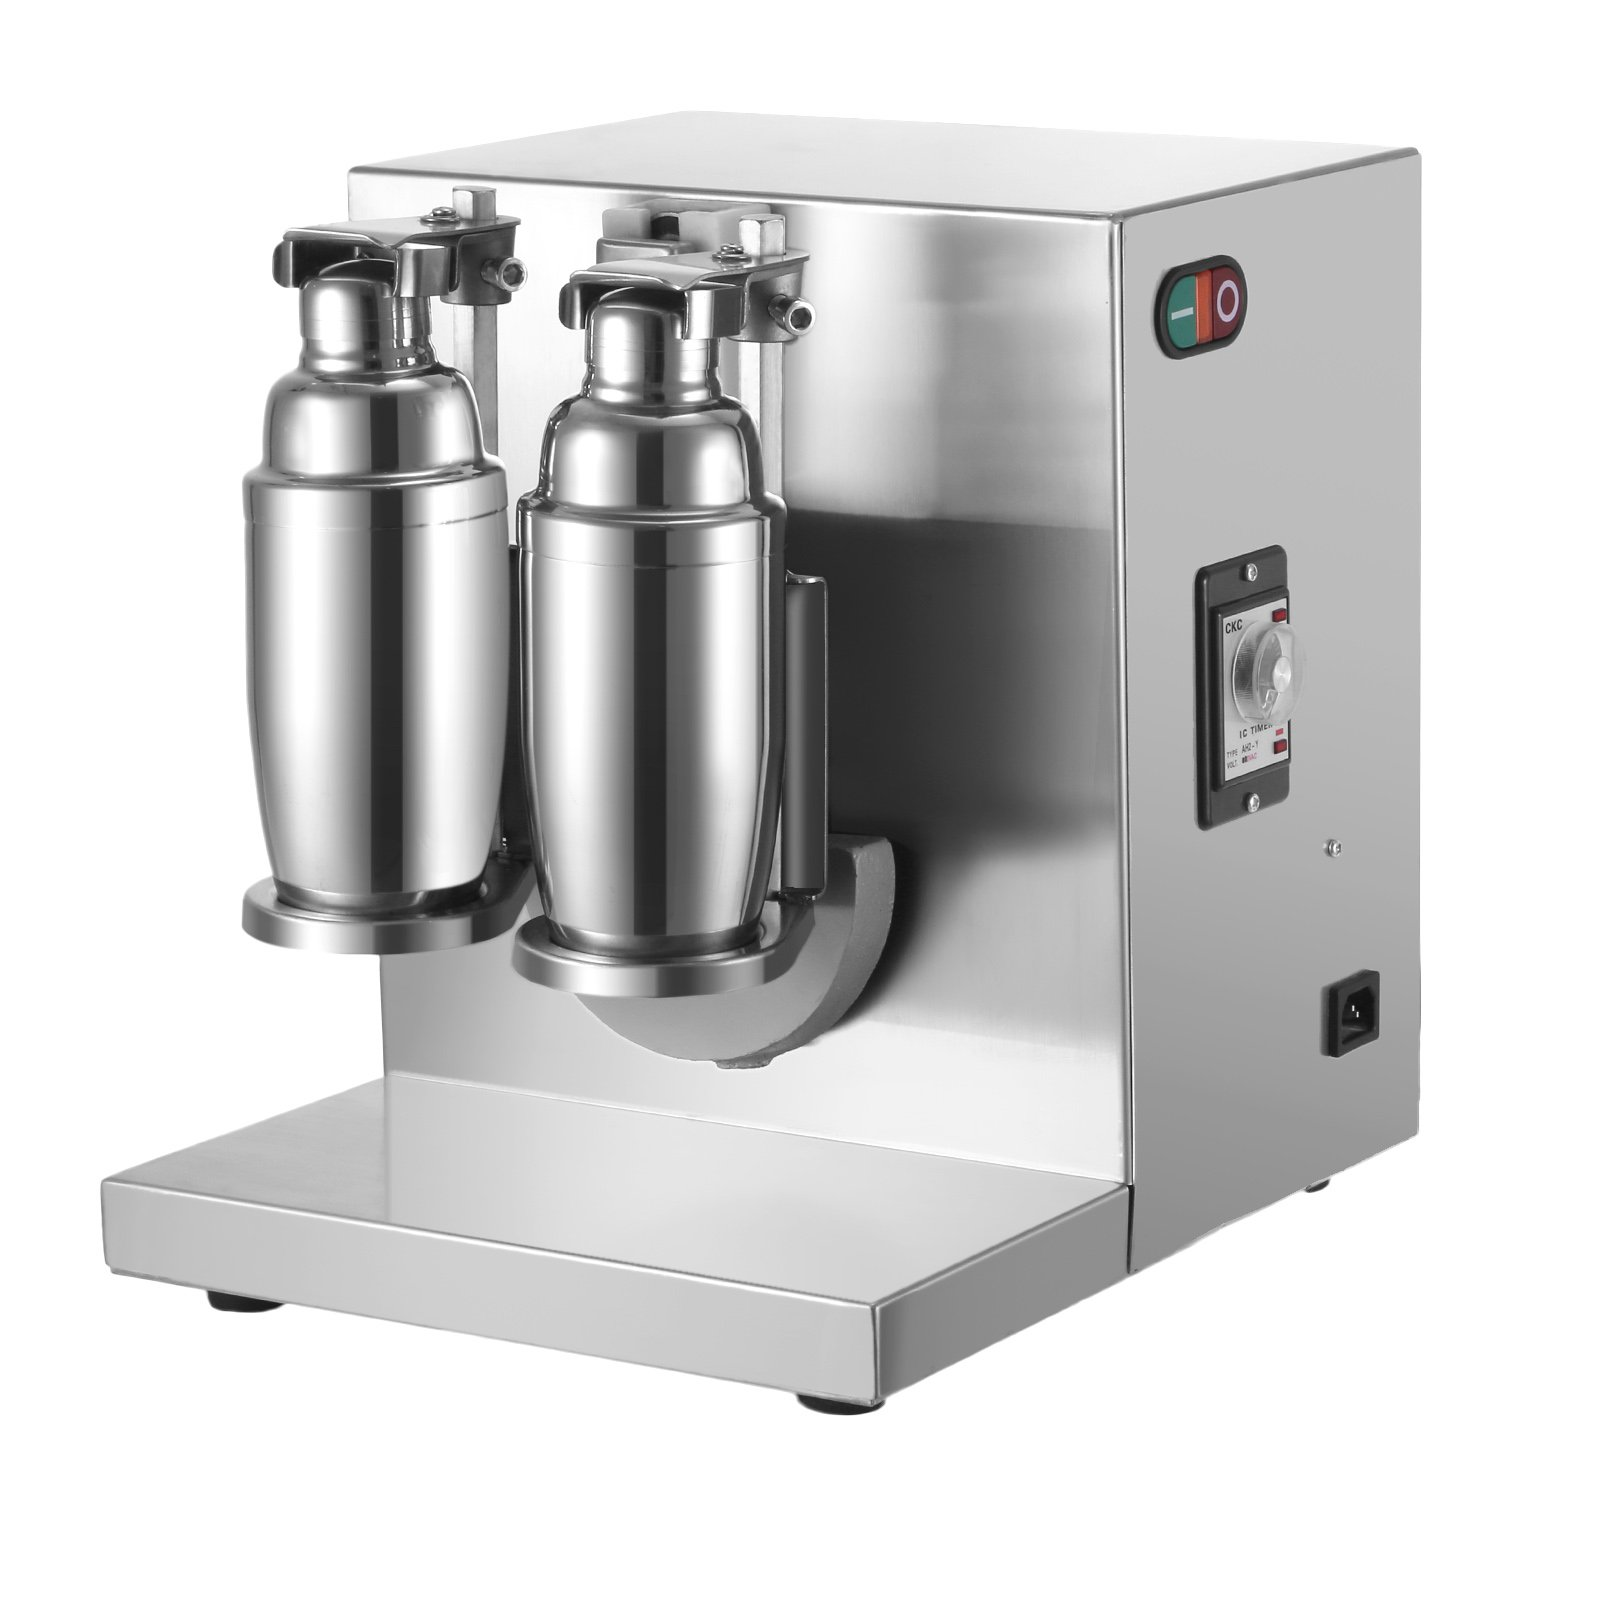 Happybuy Milk Tea Shaker Double Frame Milk Tea Shaking Machine 400r/min Stainless Steel Auto Tea Milk Making Machine for Boba Milk Tea